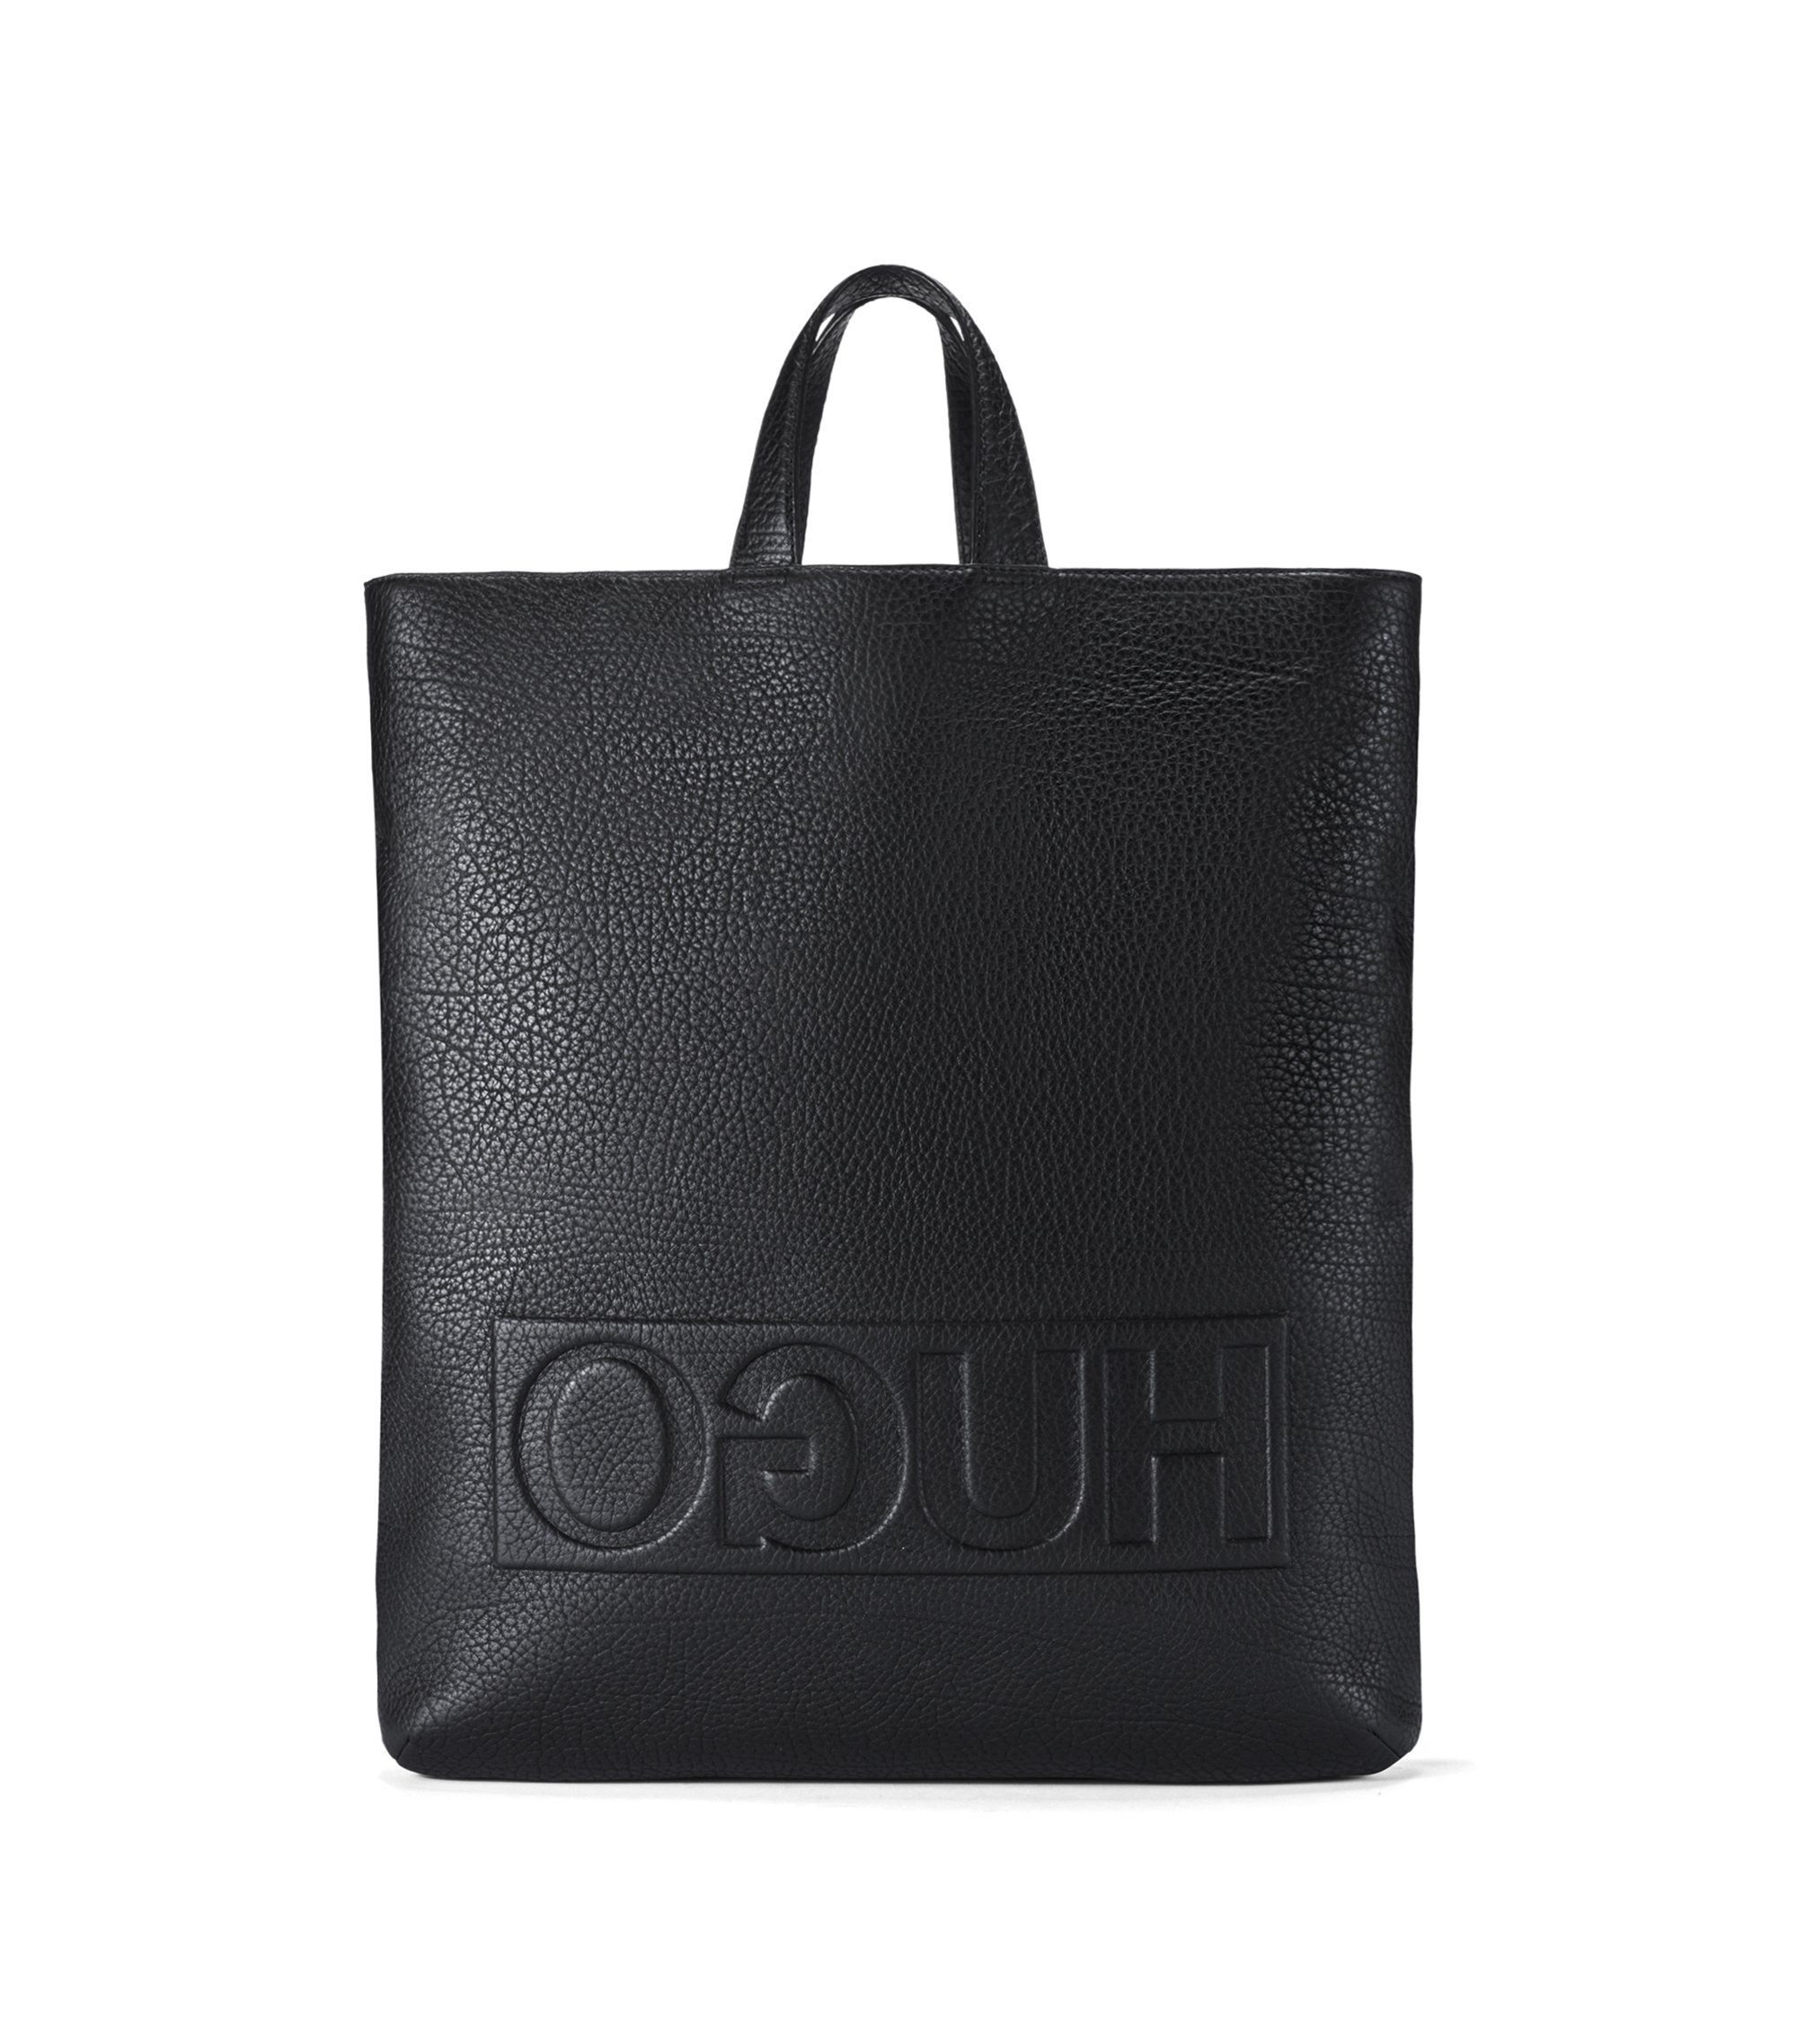 Reverse-logo tote backpack in grained Italian leather, Black